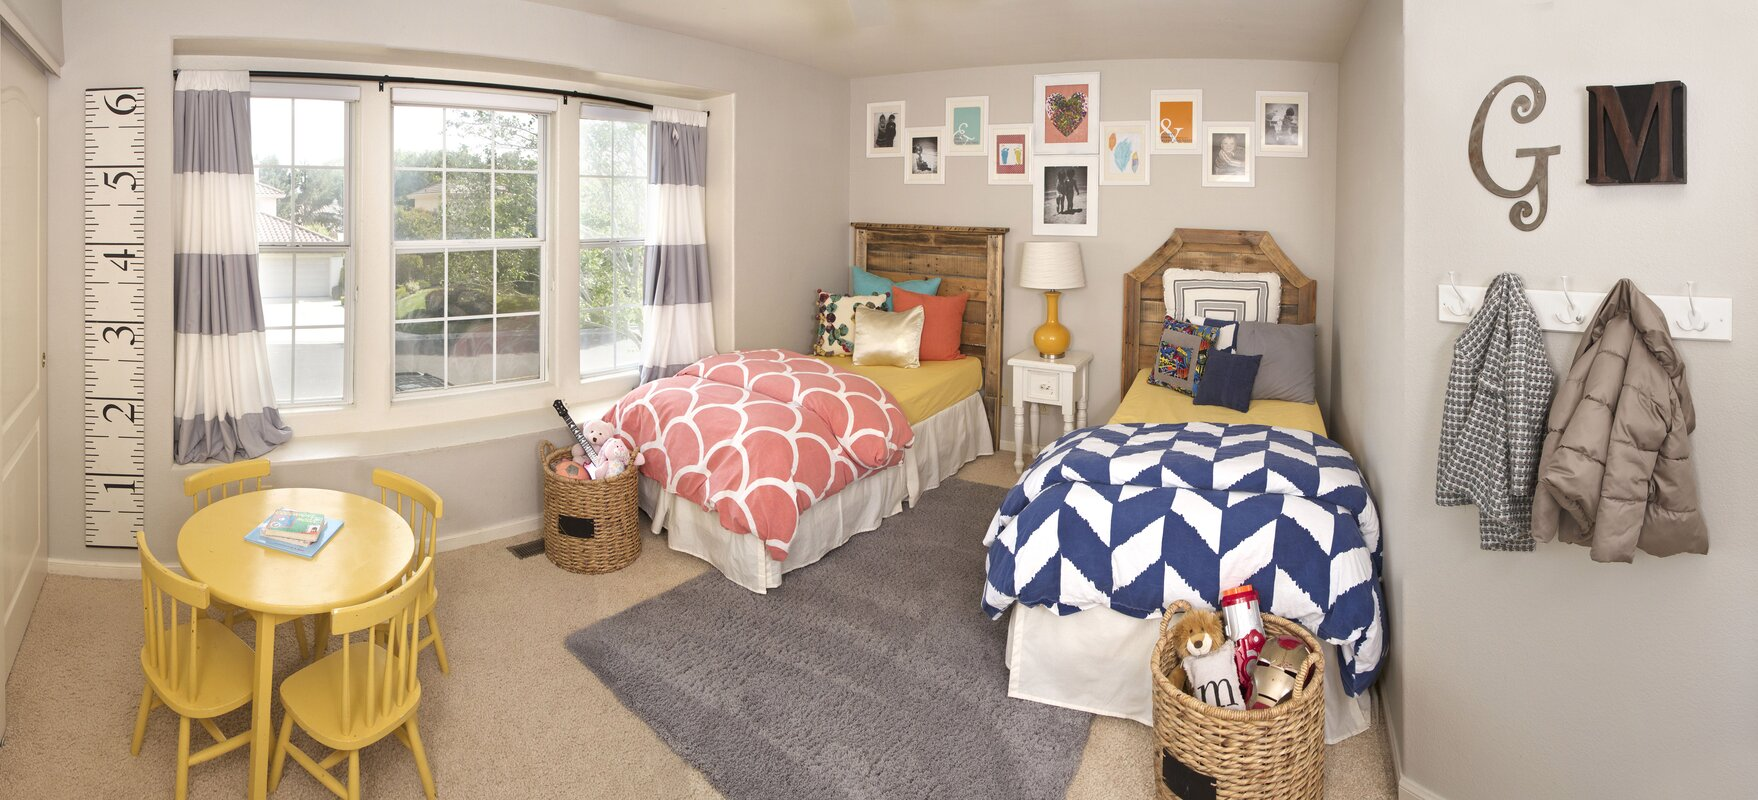 Modern Rustic Kids Bedroom Design Photo By Fallon Filice Interiors